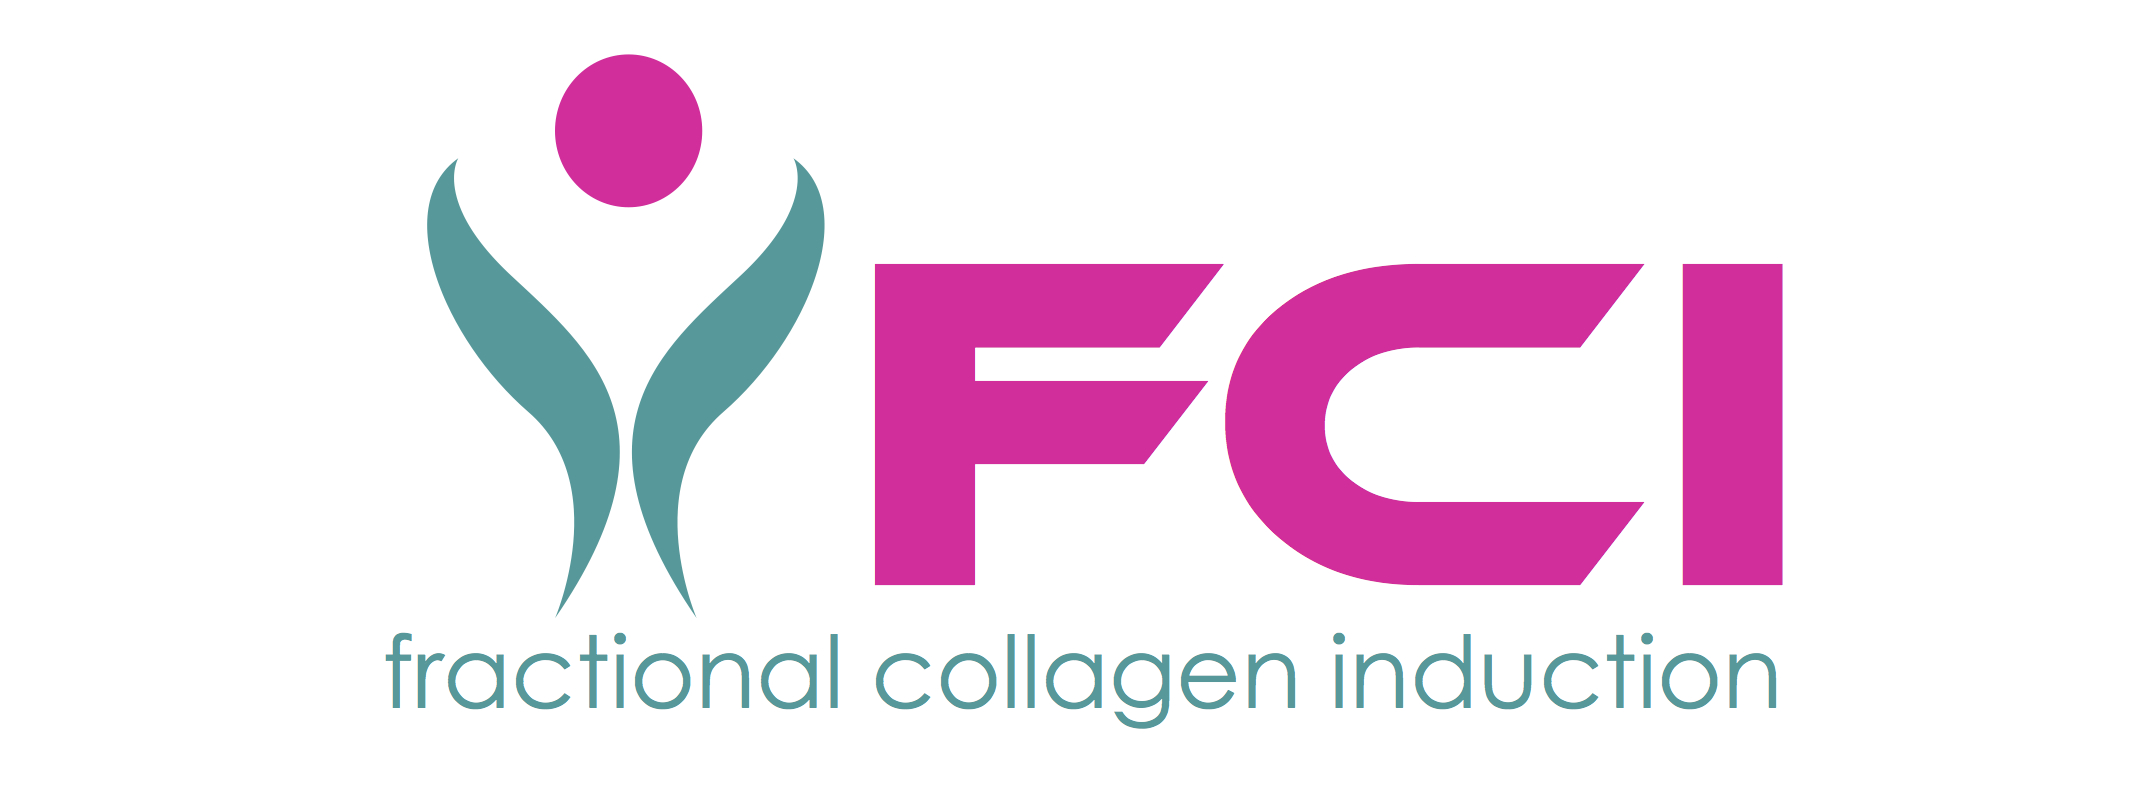 Fractional Collagen Induction Logo